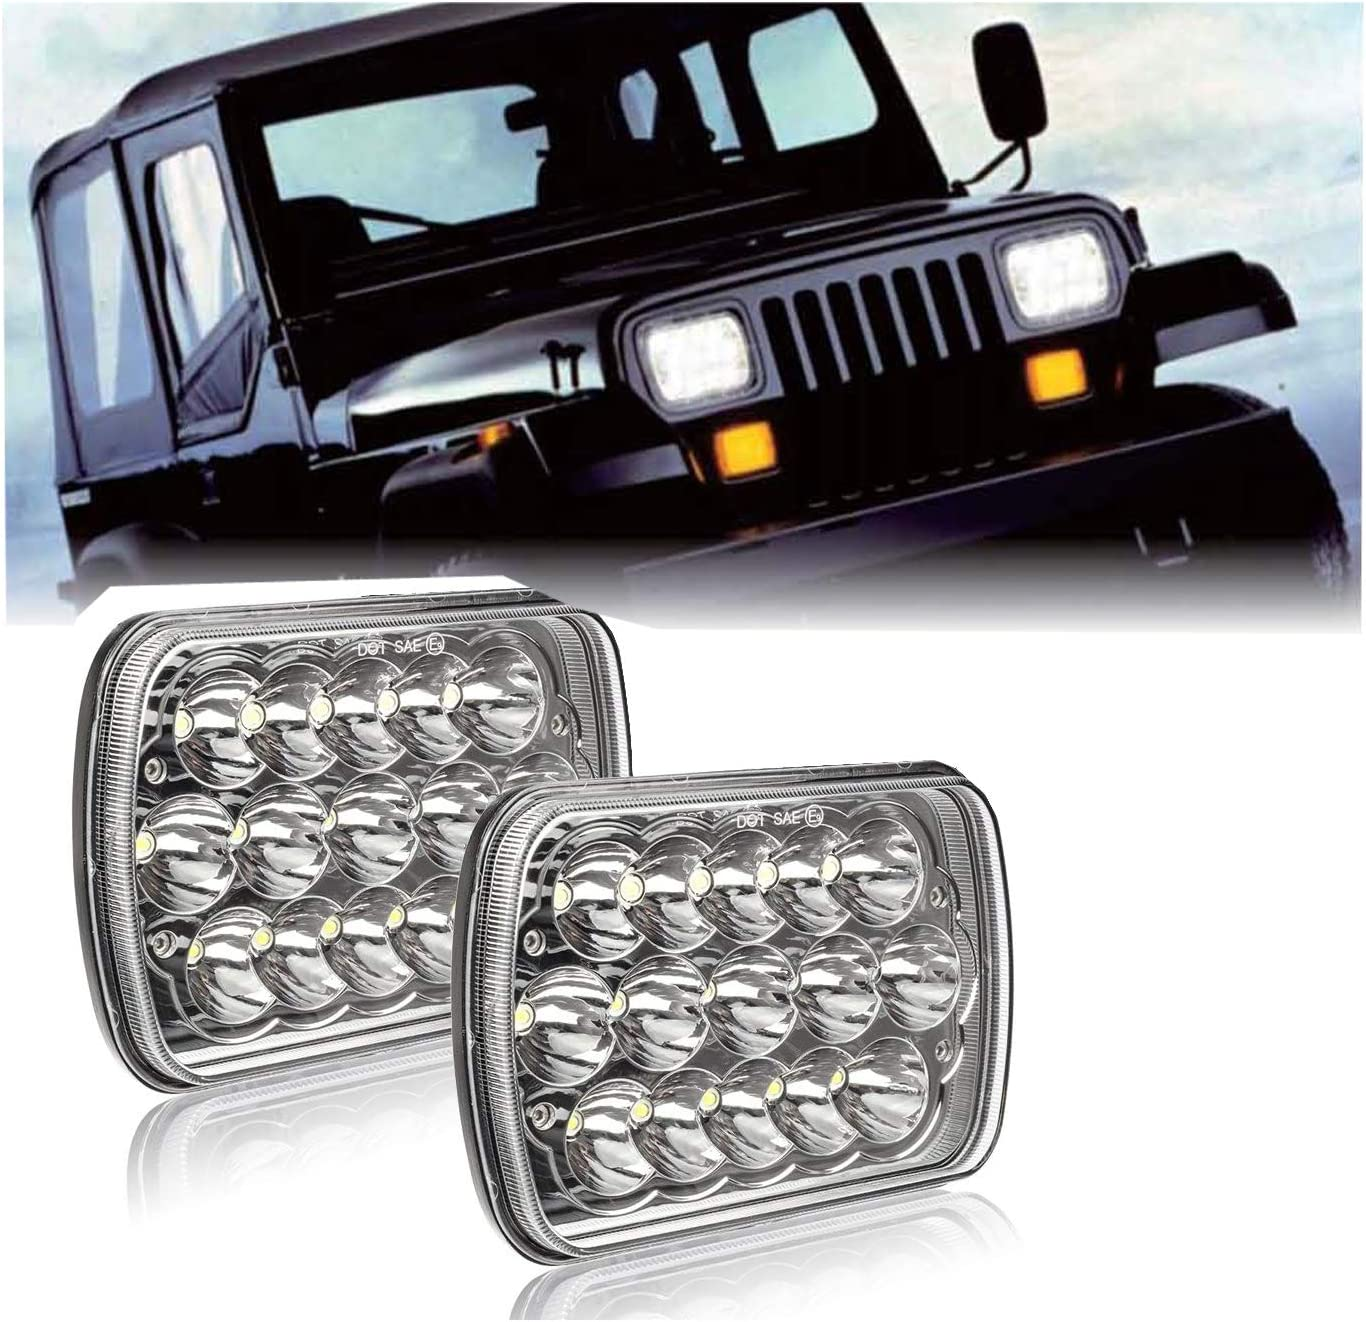 OPAP 2PCS LED Headlights 5x7 7x6 Headlamp Hi//Low Sealed Beam Compatible Wrangler YJ Cherokee XJ Trucks 4X4 Offroad Headlamp Replacement H6054 H5054 H6054LL 69822 6052 6053 with H4 Plug